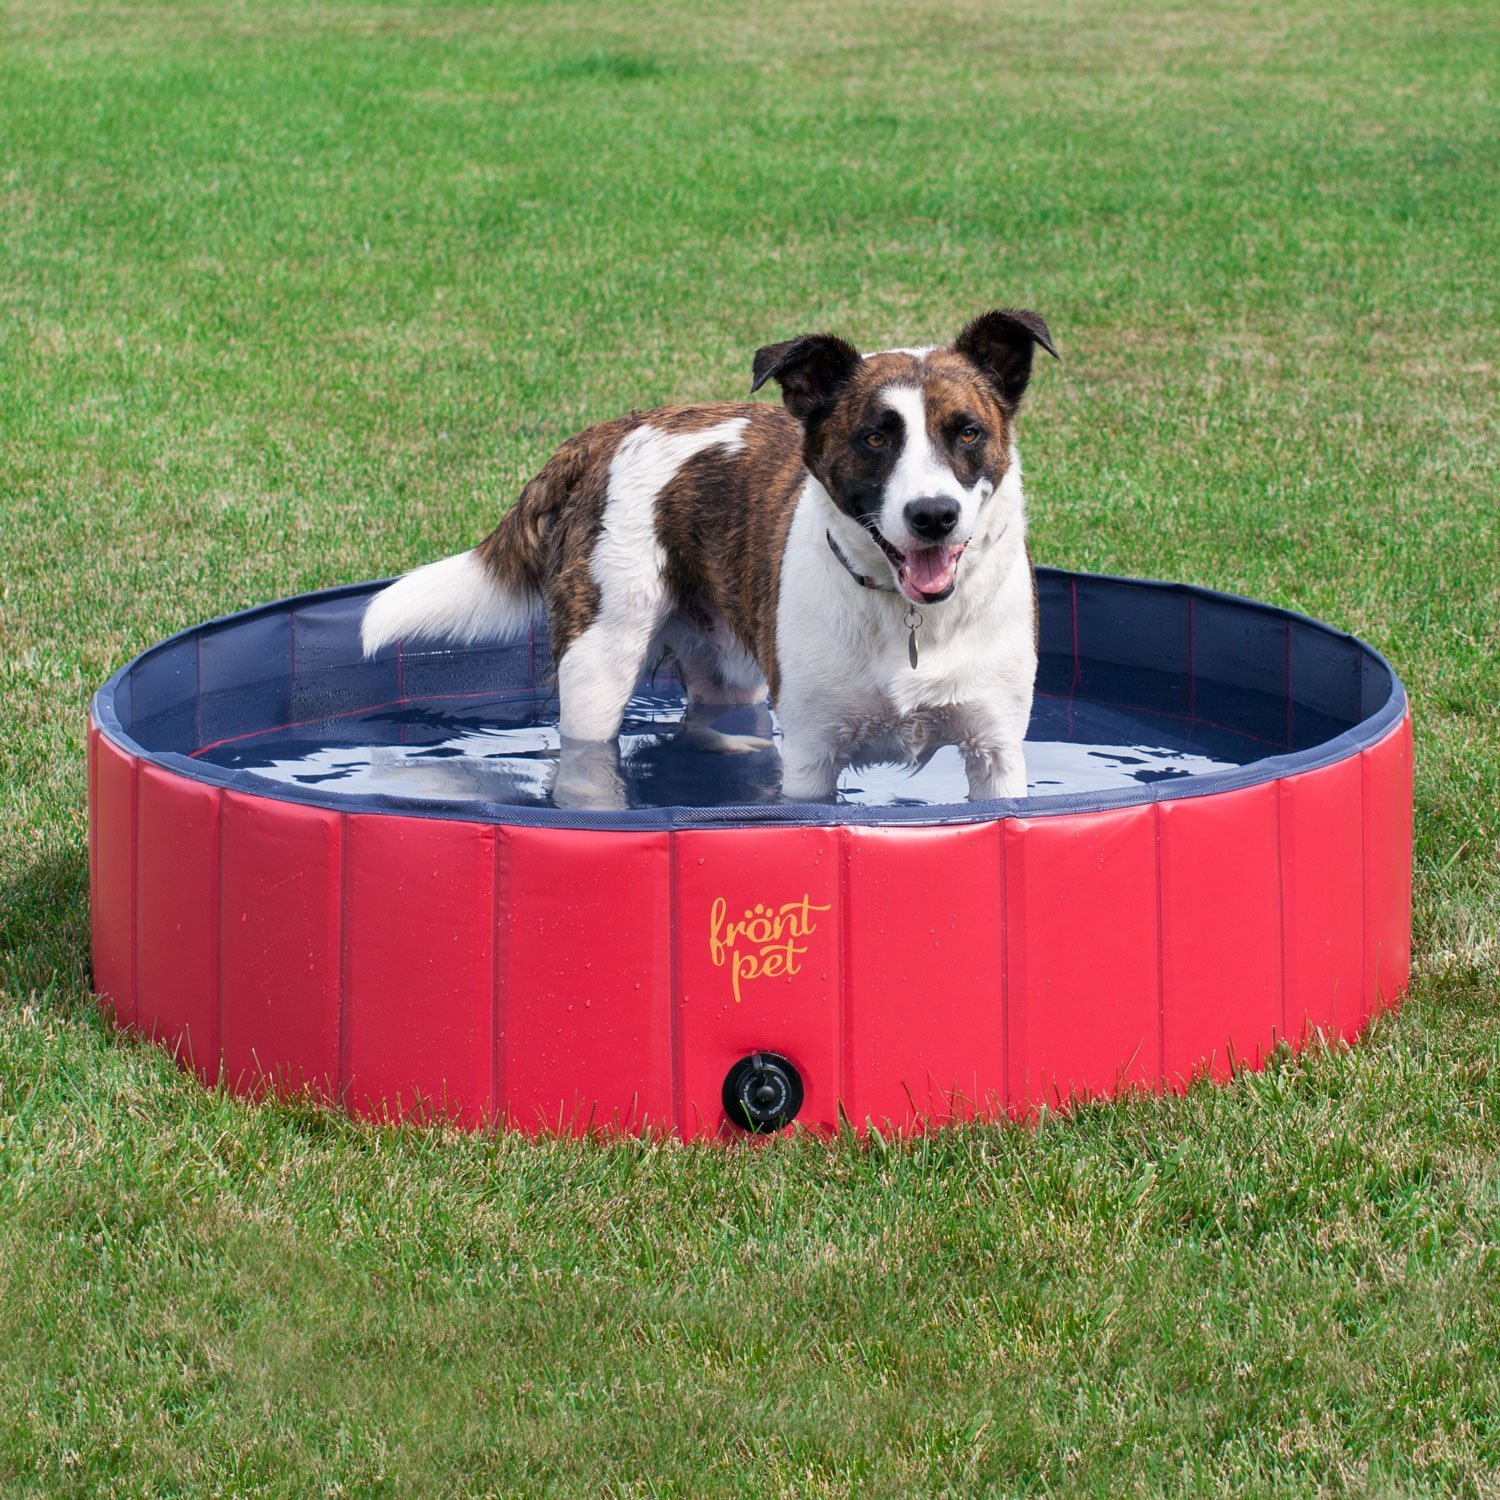 Dog Wading Pool | How to Keep a Dog Cool in the Summer (www.danslelakehouse.com)